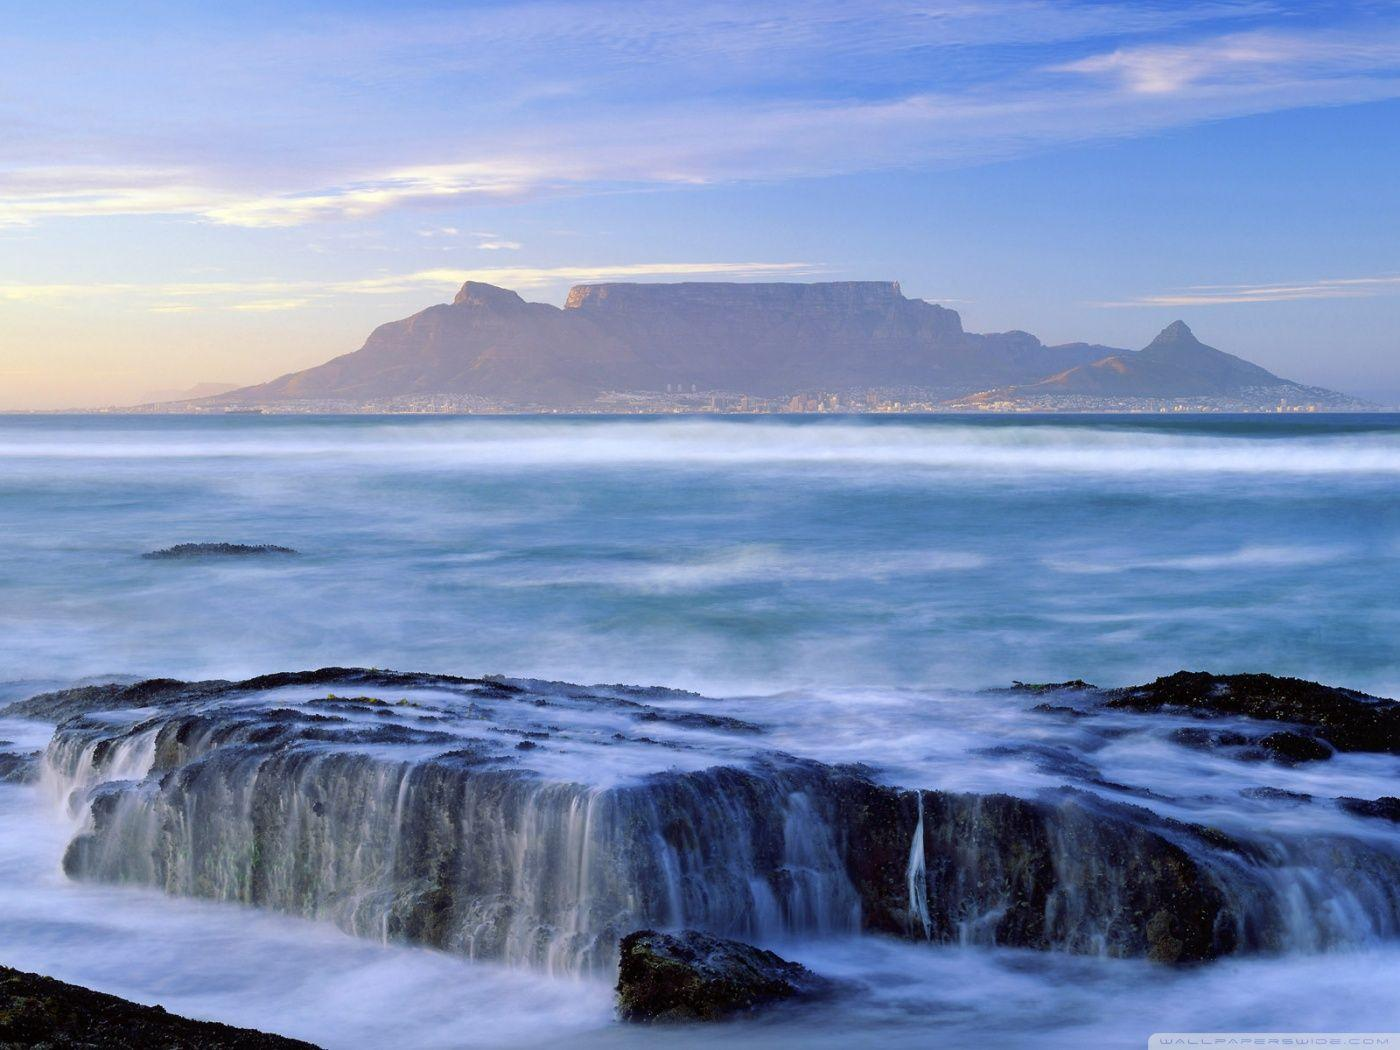 South africa wallpapers wallpaper cave - Table mountain wallpaper ...